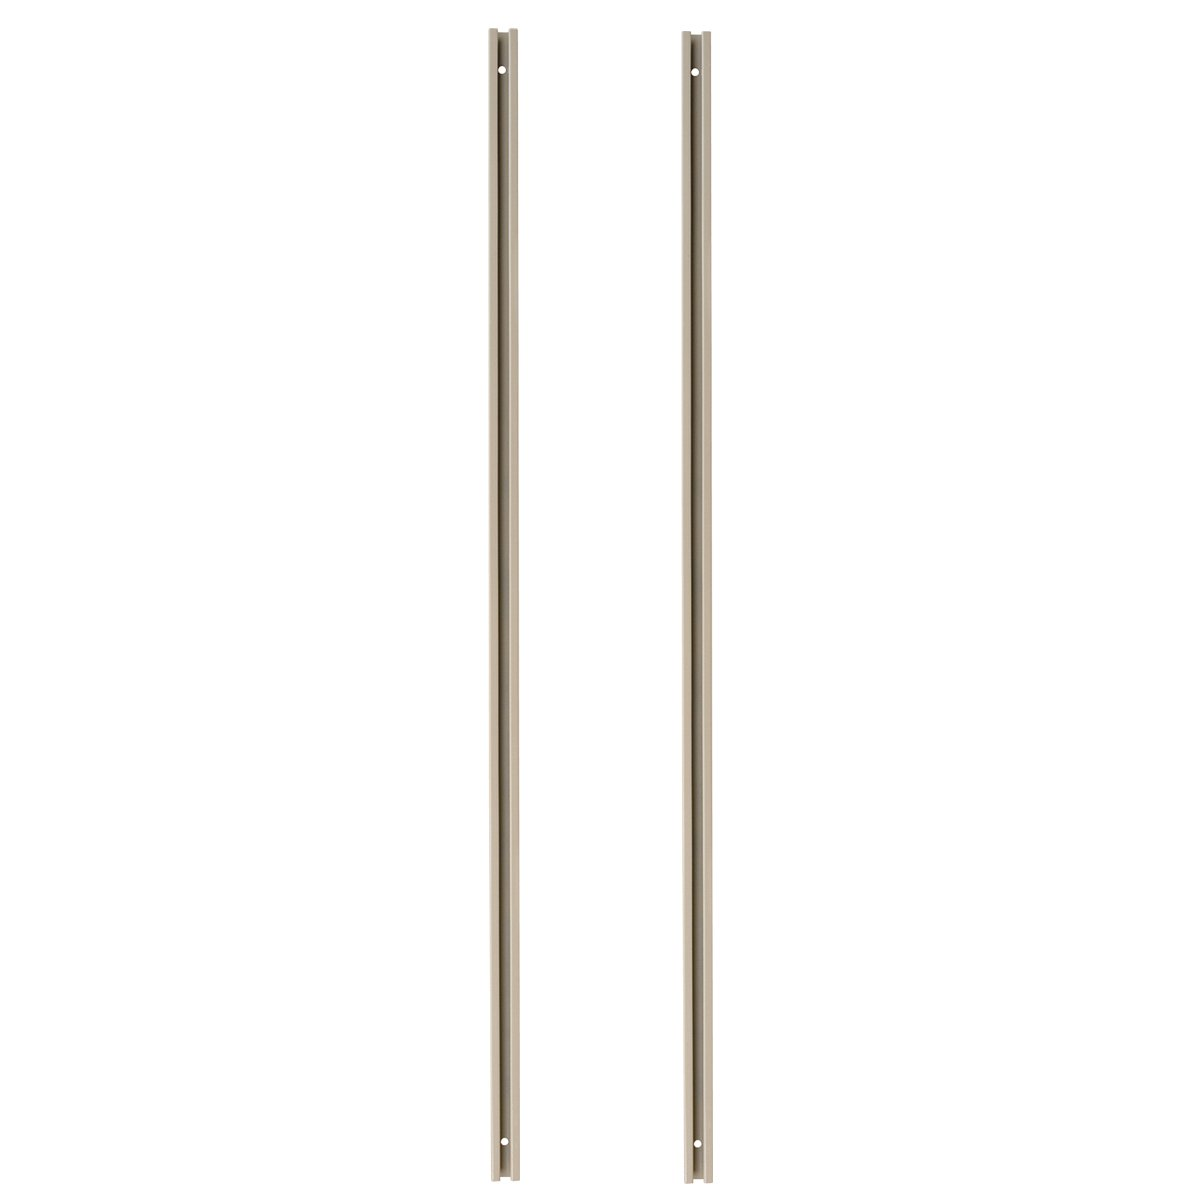 Akro-Mils TV70R 70-Inch Tall Mounting Rail for TiltView Horizontal Plastic Storage System, Beige, Set of 2